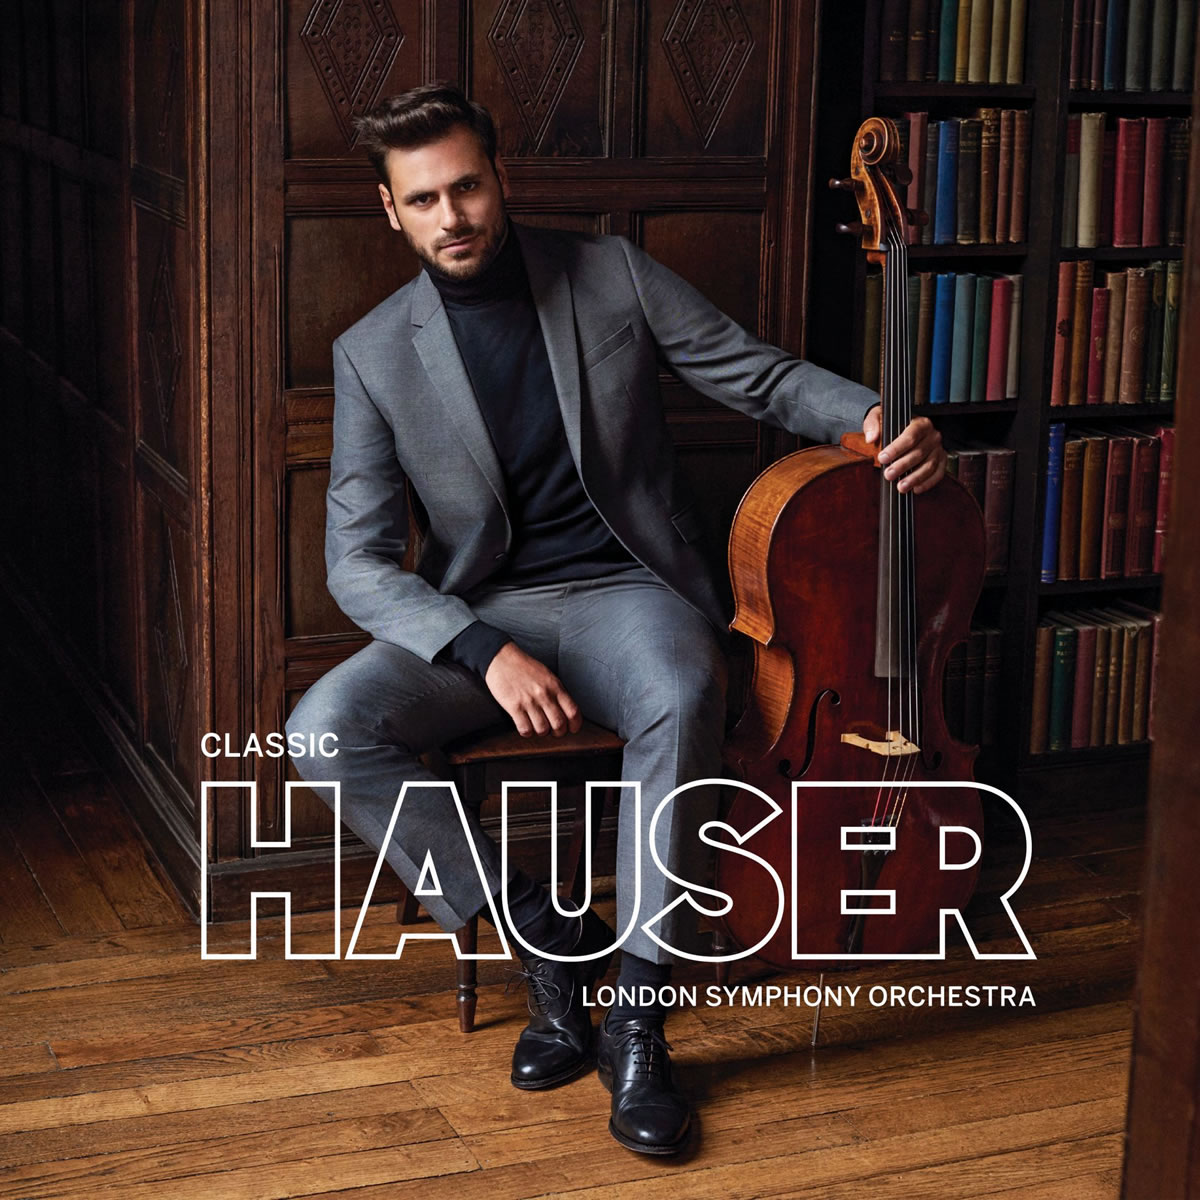 Classic / Stjepan Hauser & London Symphony Orchestra / 2020